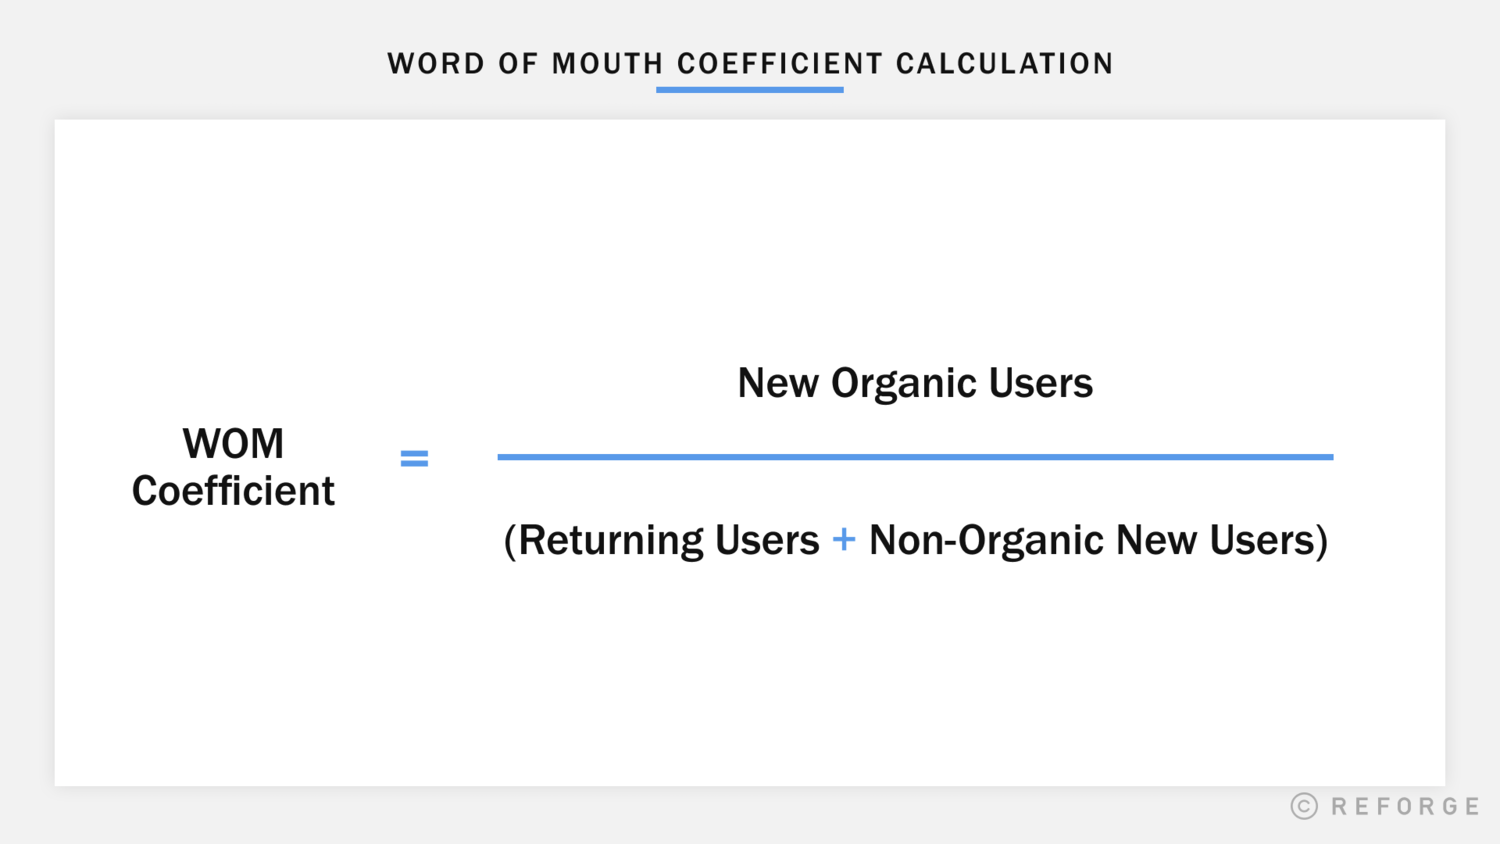 How to Calculate the Word-of-Mouth Coefficient